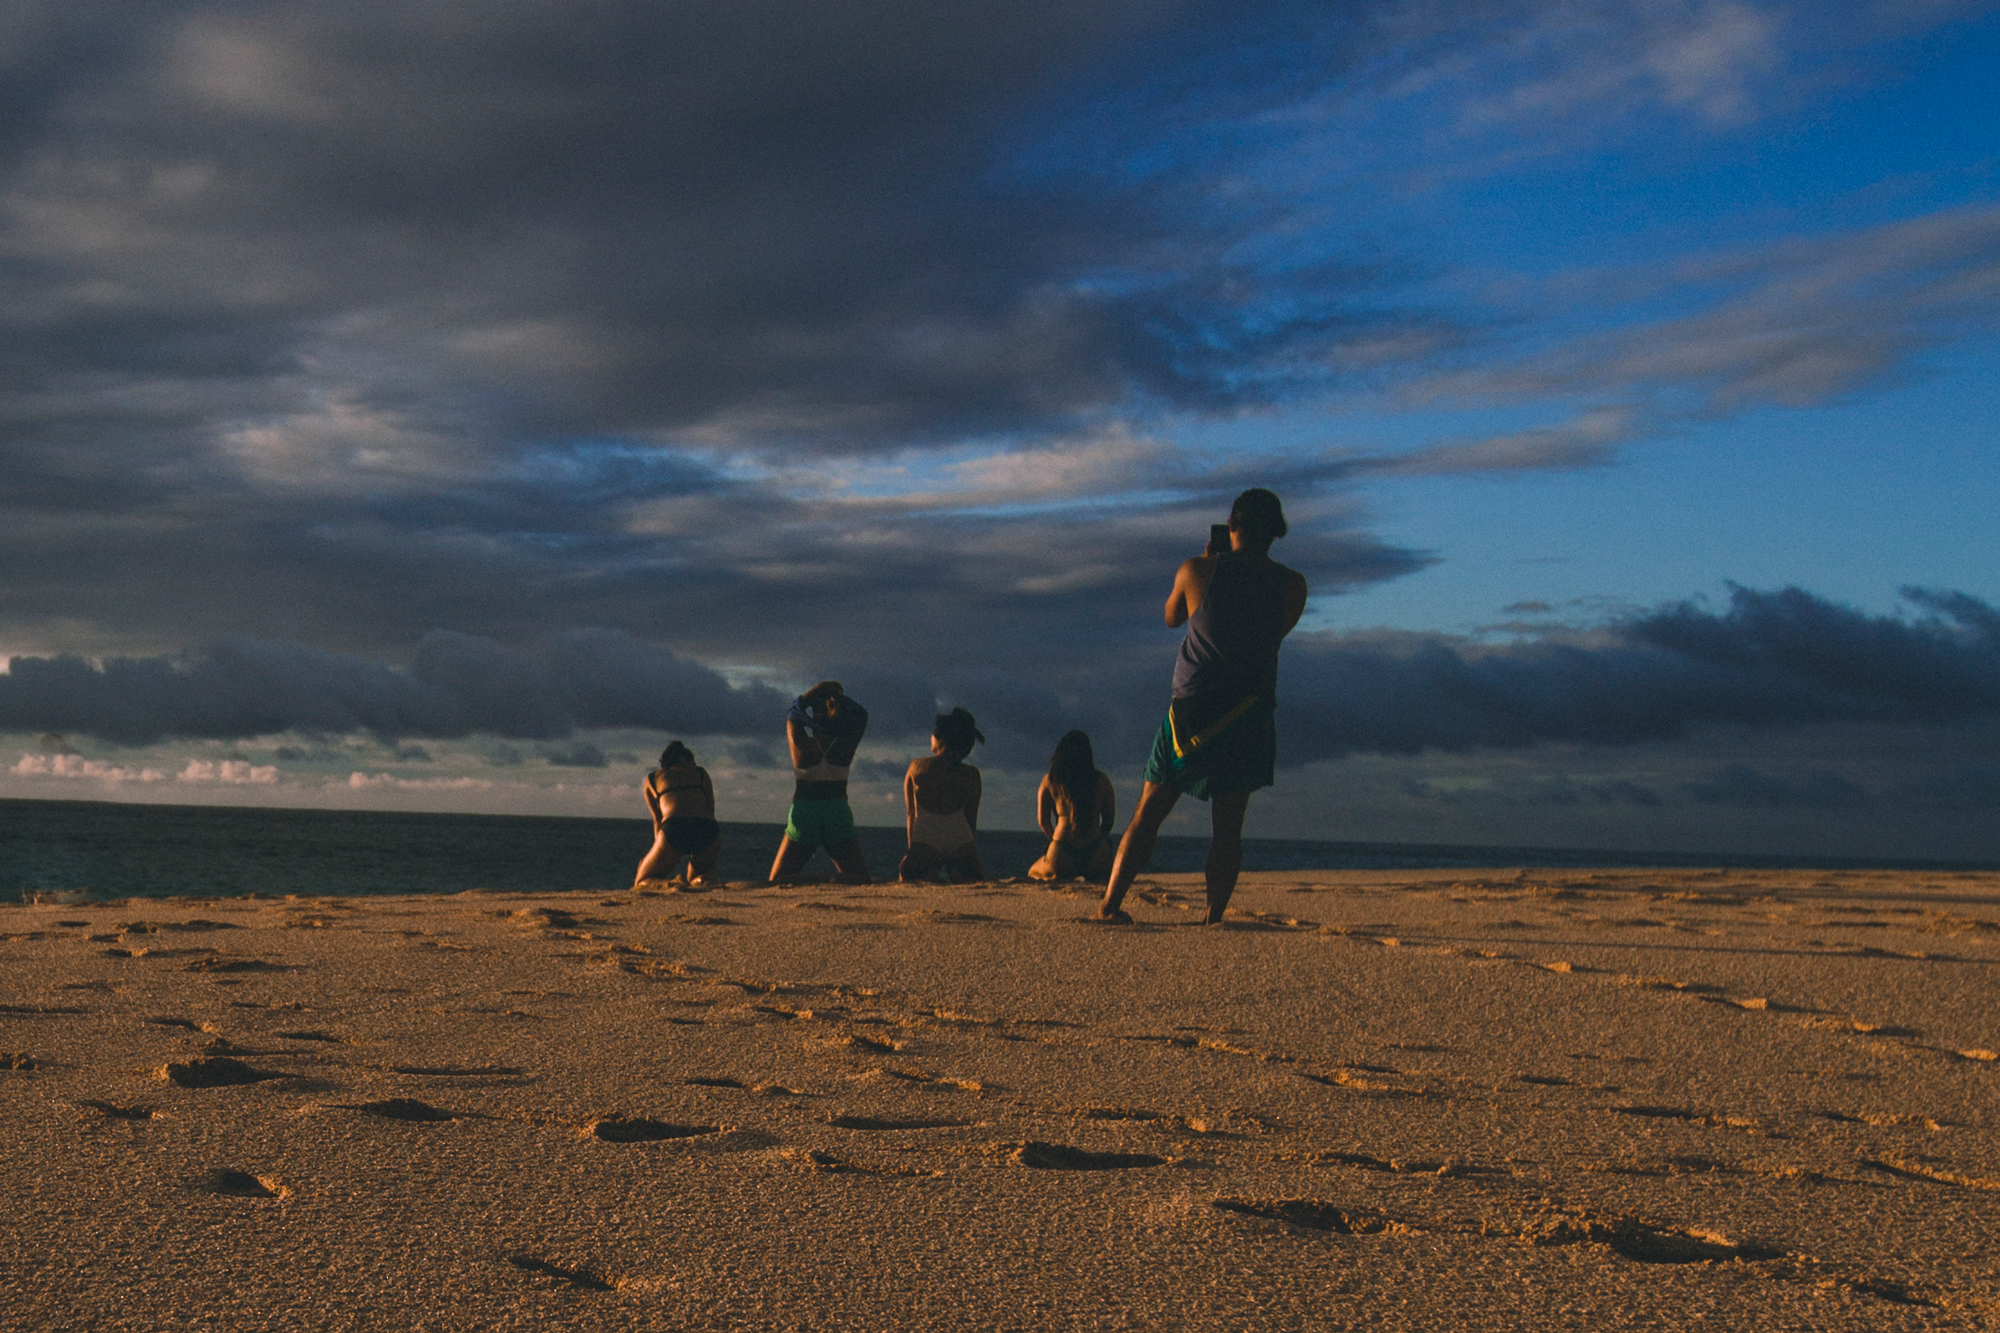 A legitimate photo I took on the beach in Hawaii last night. Four girls posing on the beach while their friend takes photos for Instagram.